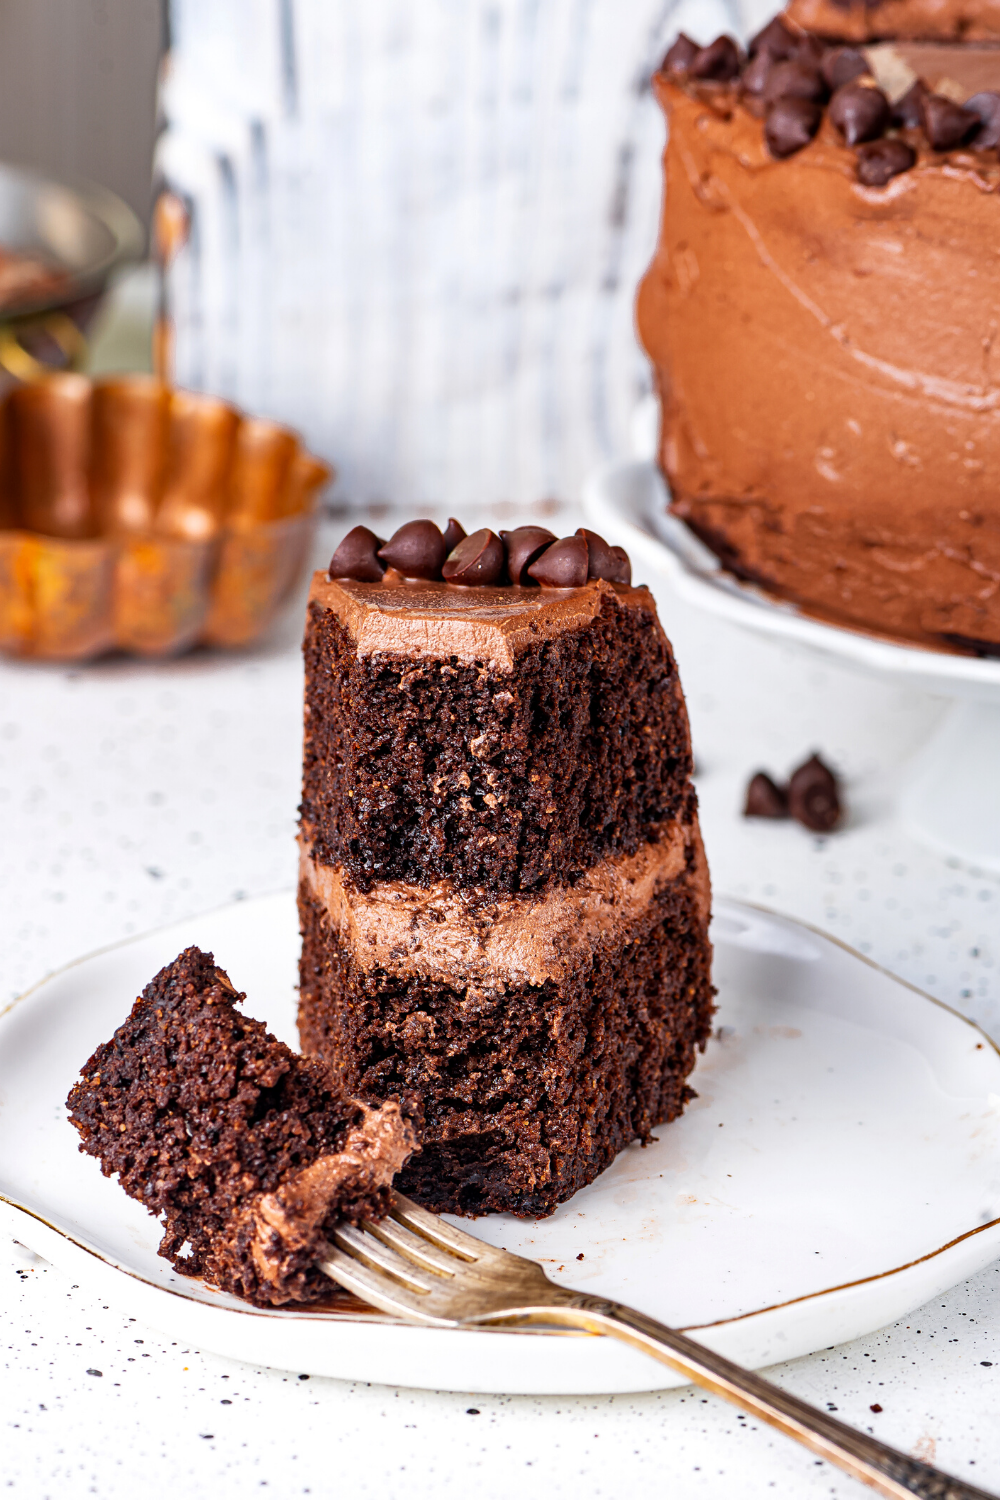 A slice of chocolate cake on a white plate with a fork in front of the cake. There is some of the chocolate cake on the prong of the fork.